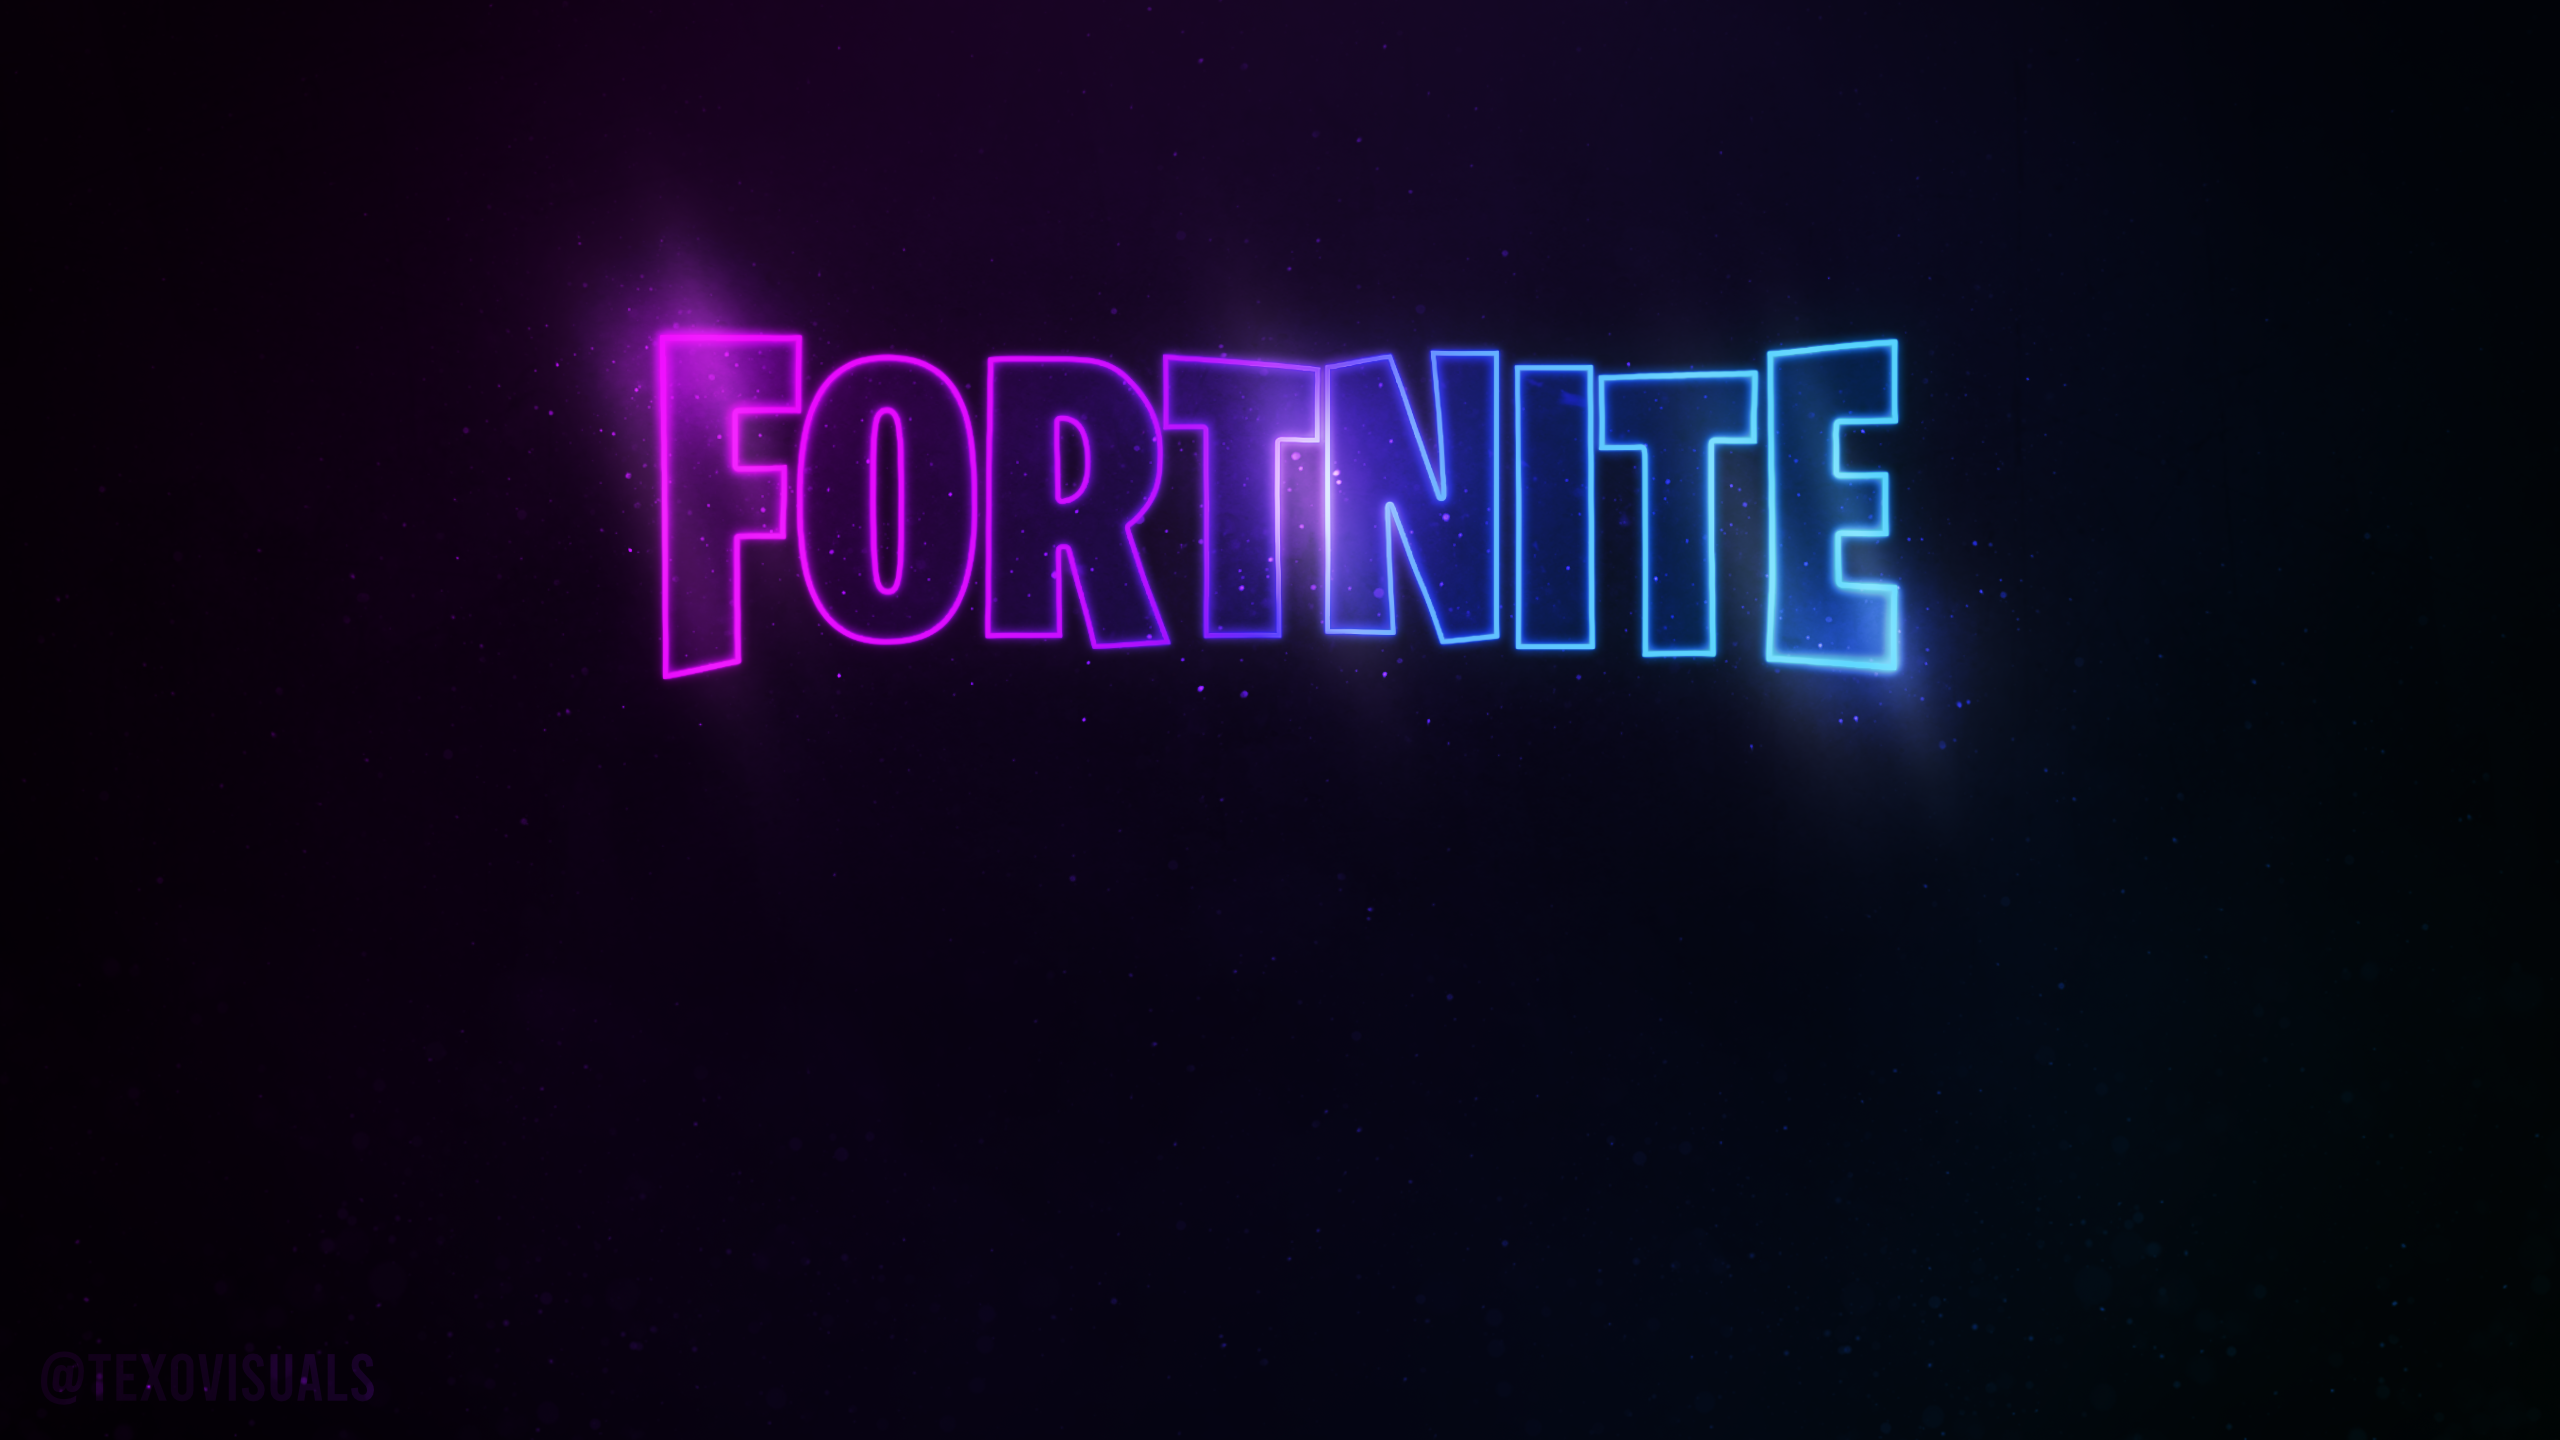 Cool Fortnite Wallpapers On Wallpaperdog Multiple sizes available for all screen sizes. cool wallpapers wallpaperdog